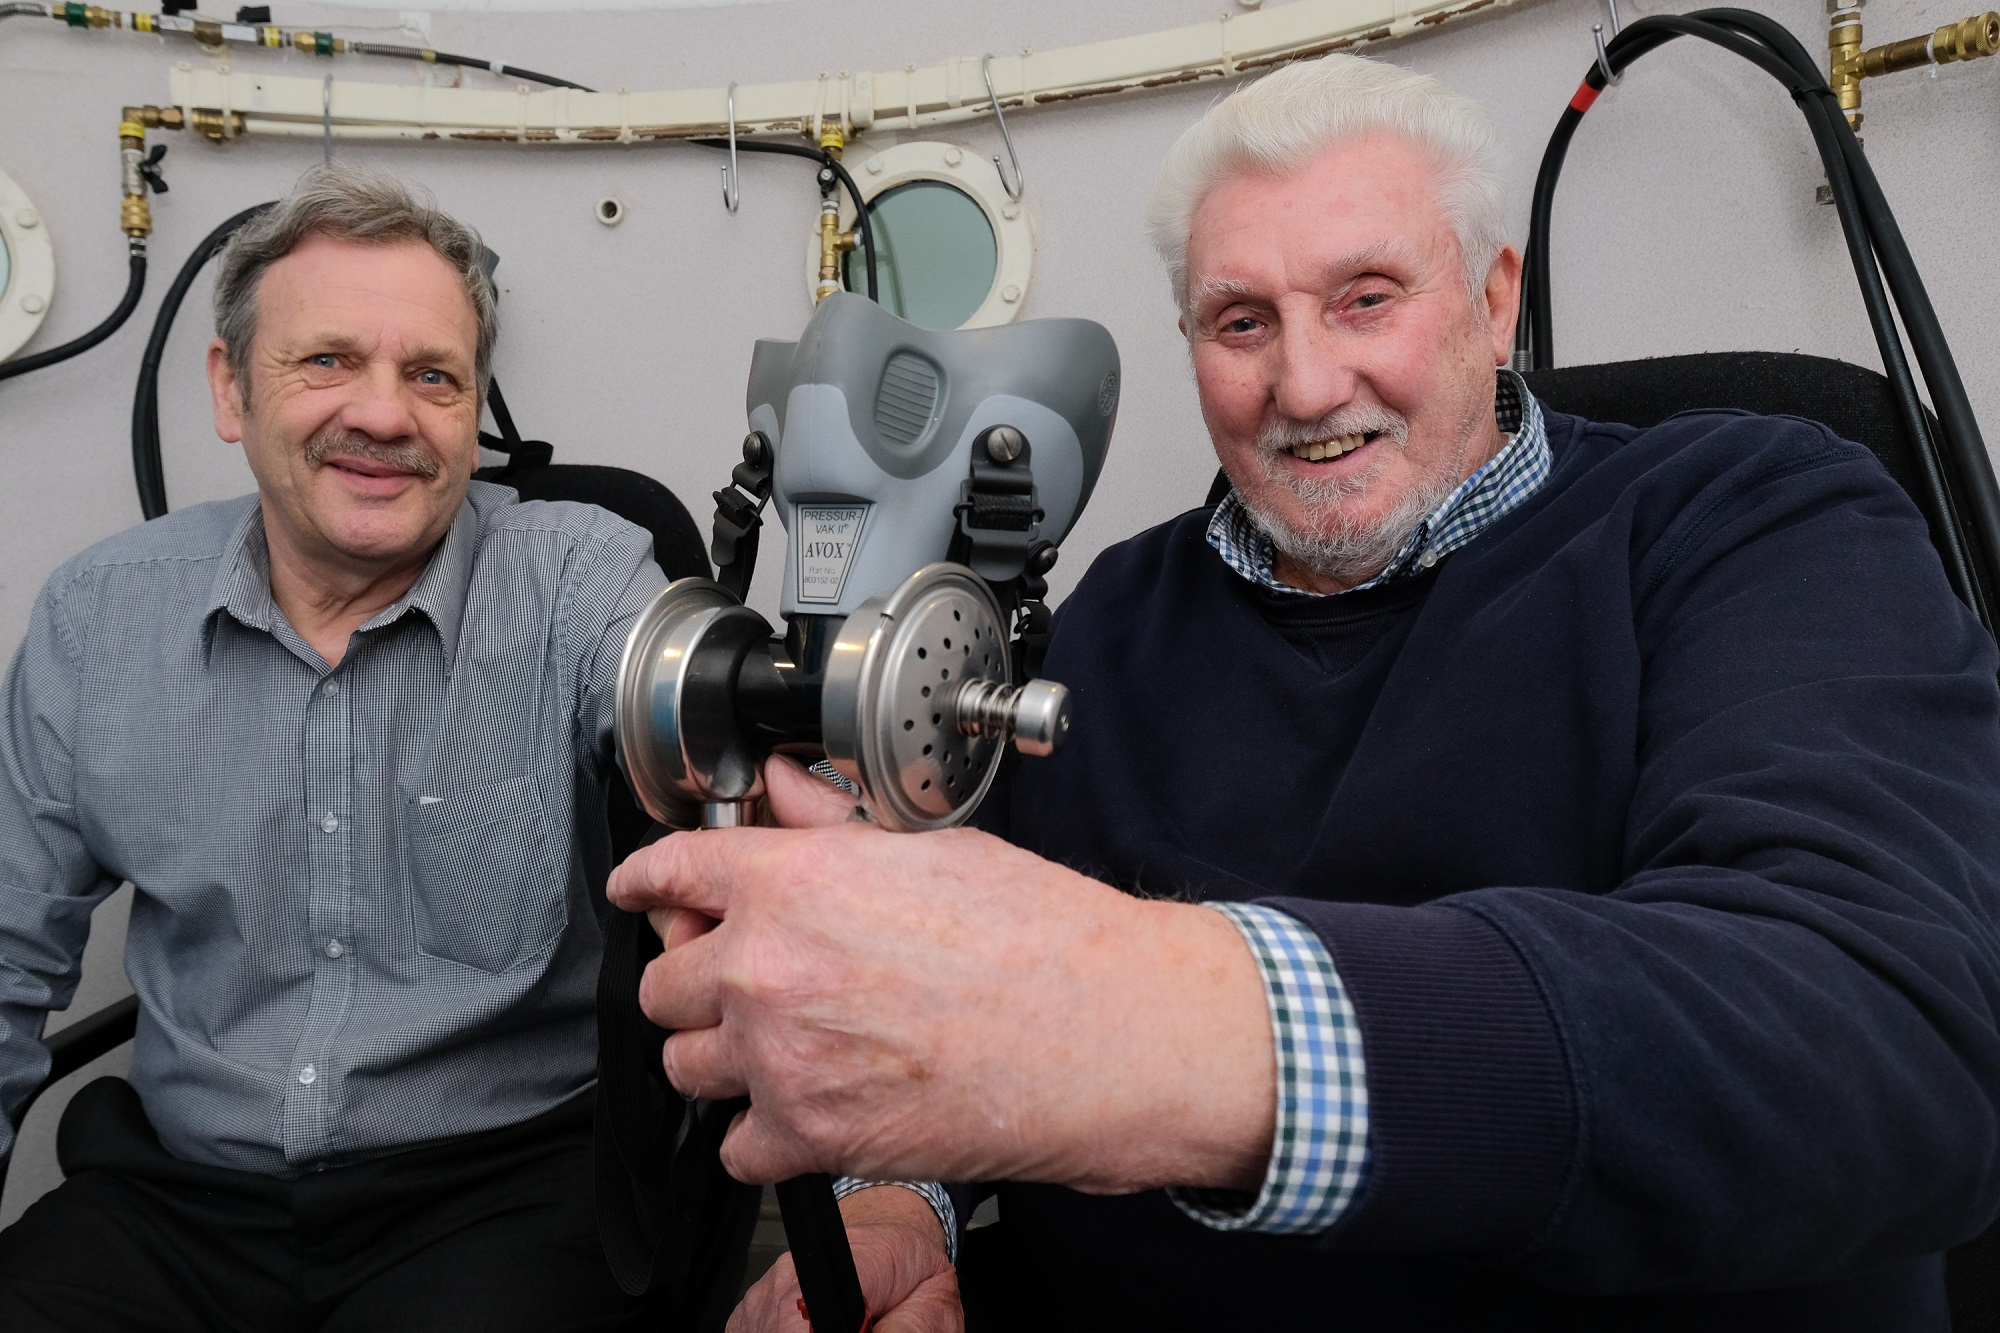 PLAN HATCHED: Centre manager Alan Riddiough, left, with Bill Scot Snr inside the oxygen therapy chamber